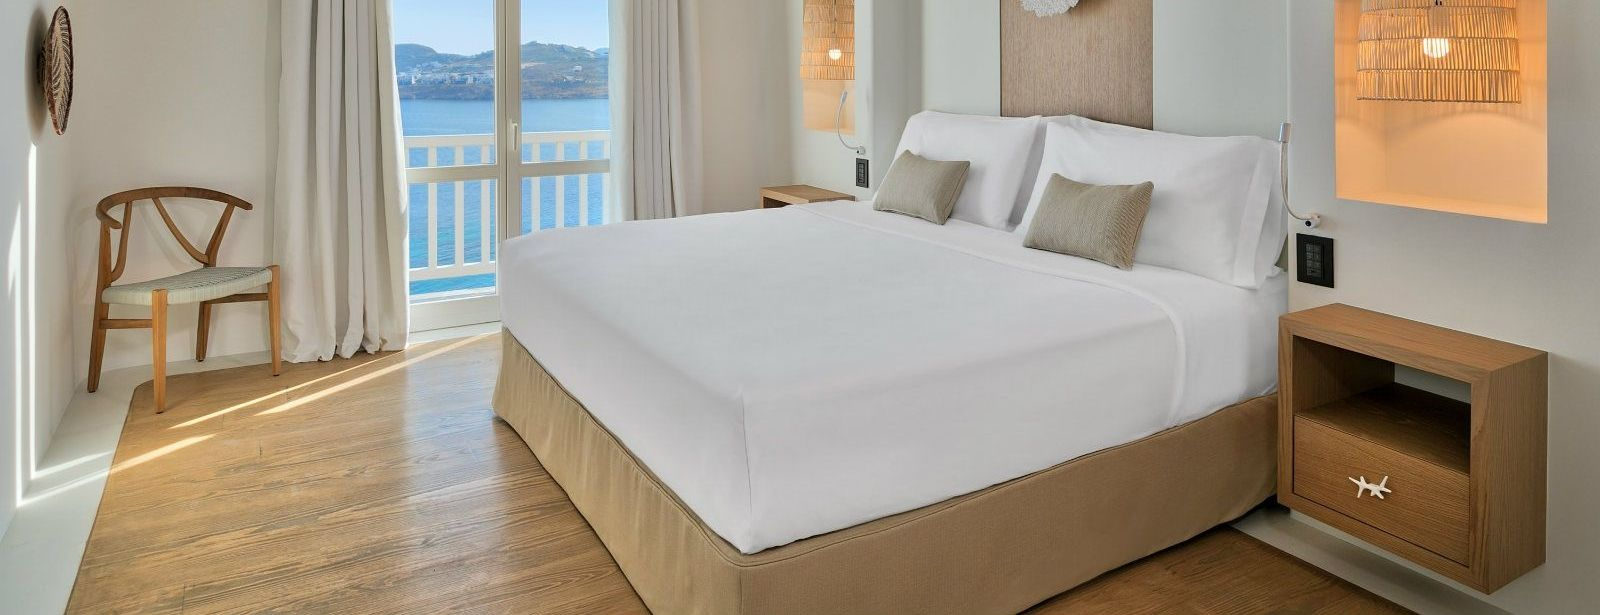 Villa Ruby Master Bedroom Santa Marina Resort Mykonos Luxury Hotel